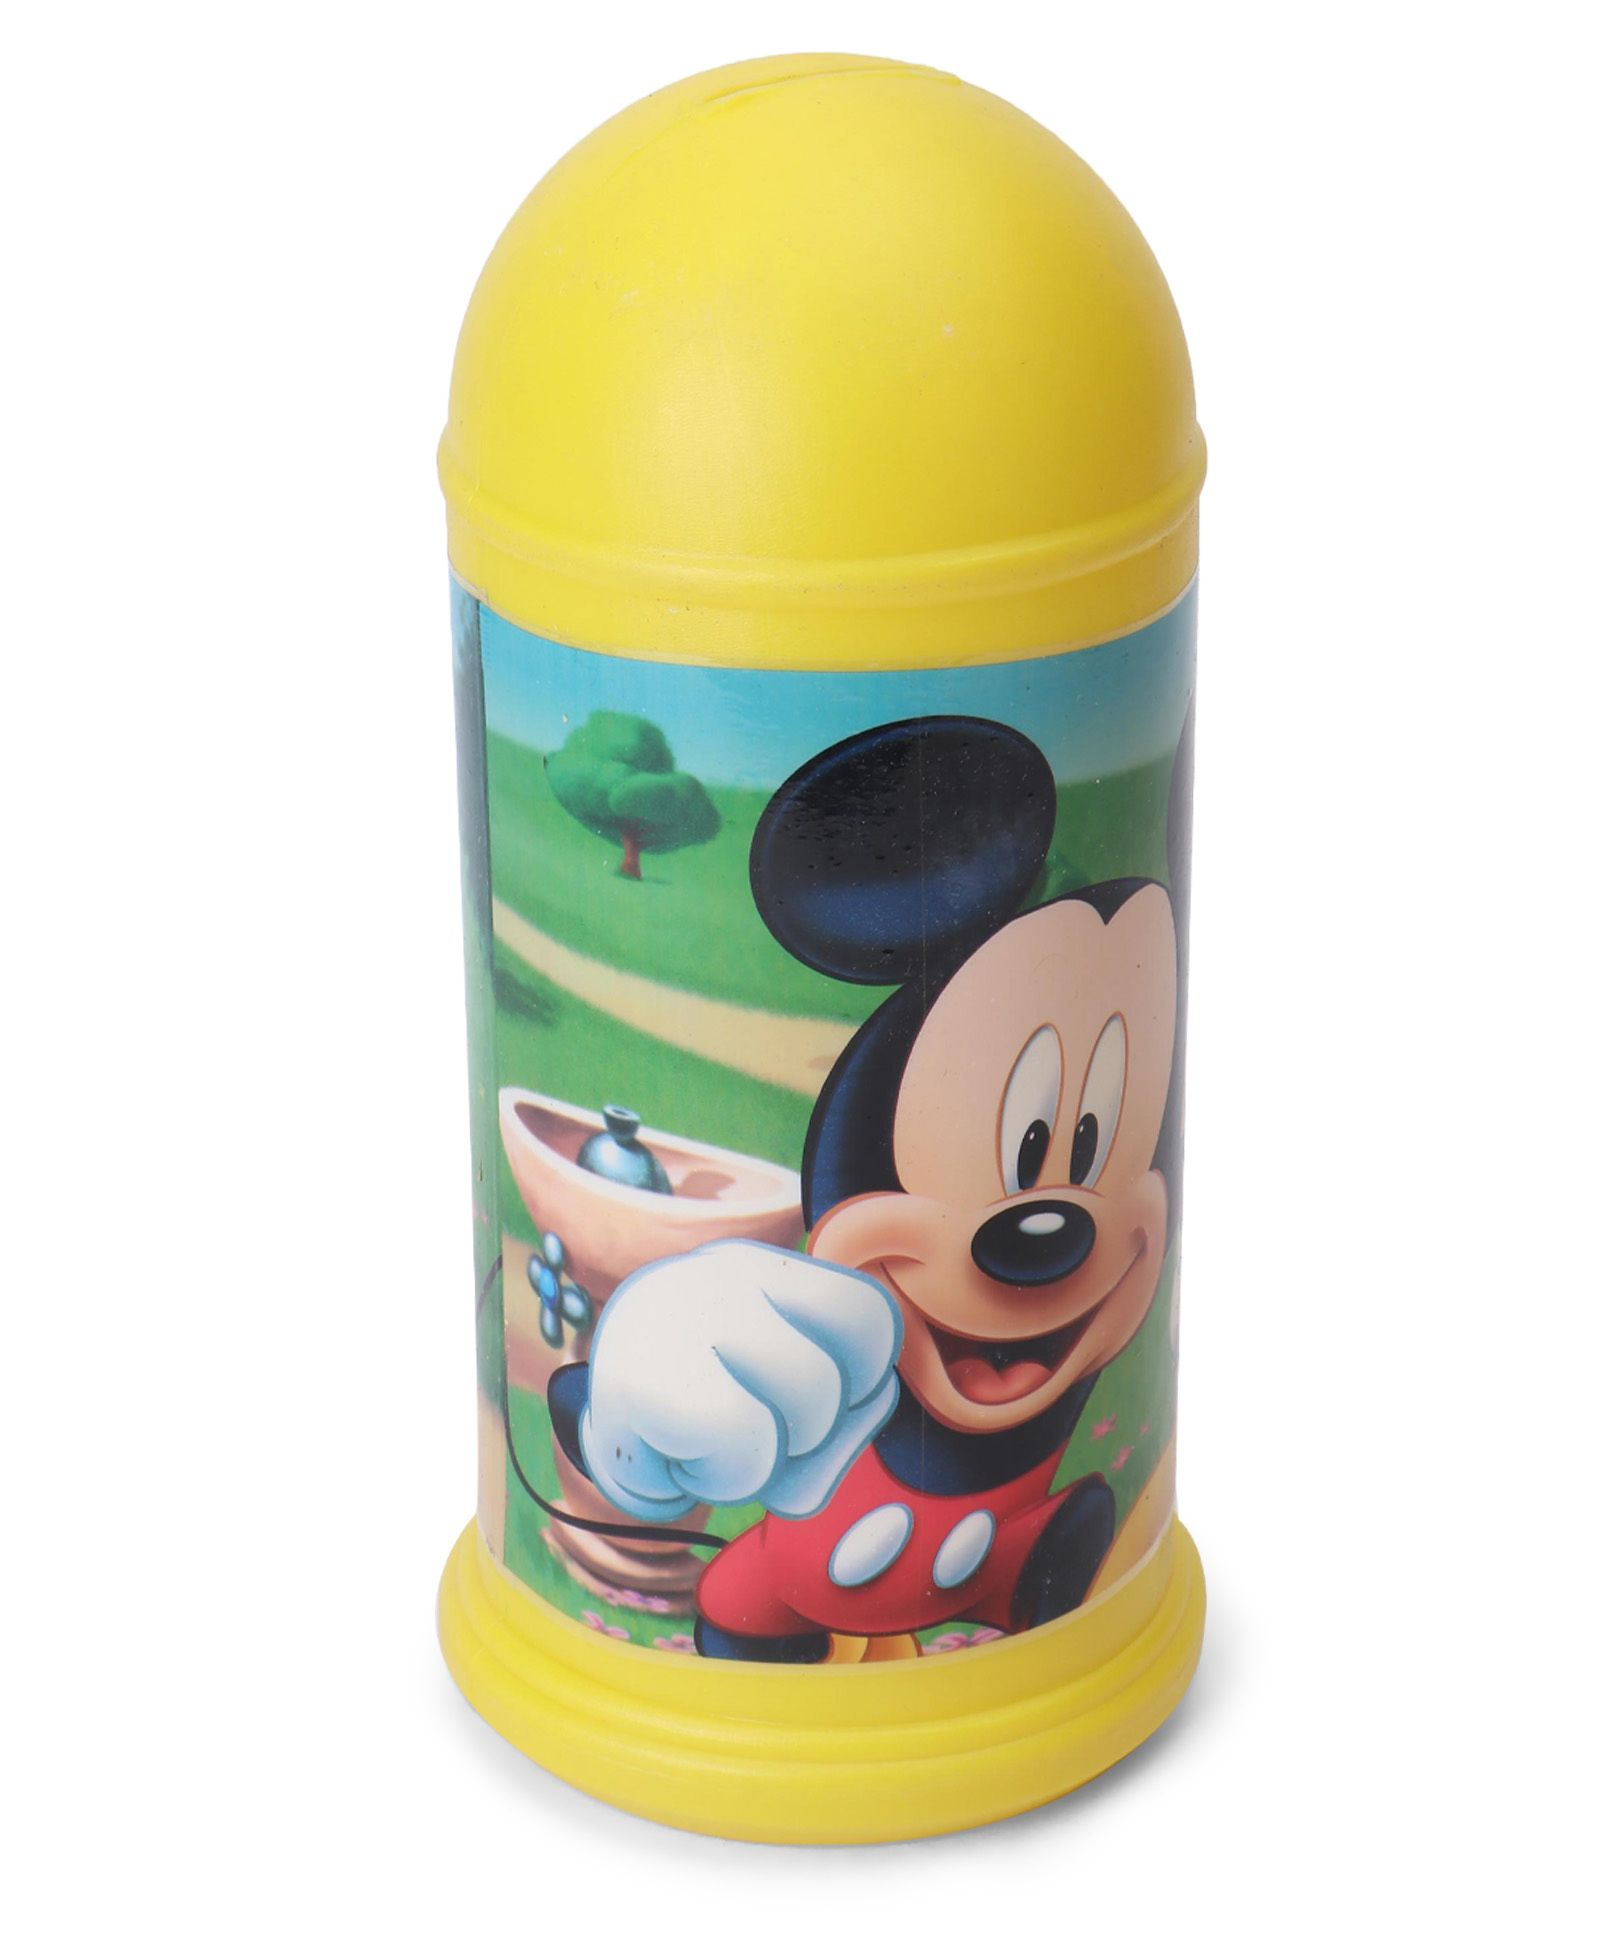 Disney Mickey Mouse Coin Bank Yellow (Print May Vary) Online in India, Buy  at Best Price from Firstcry com - 1742043